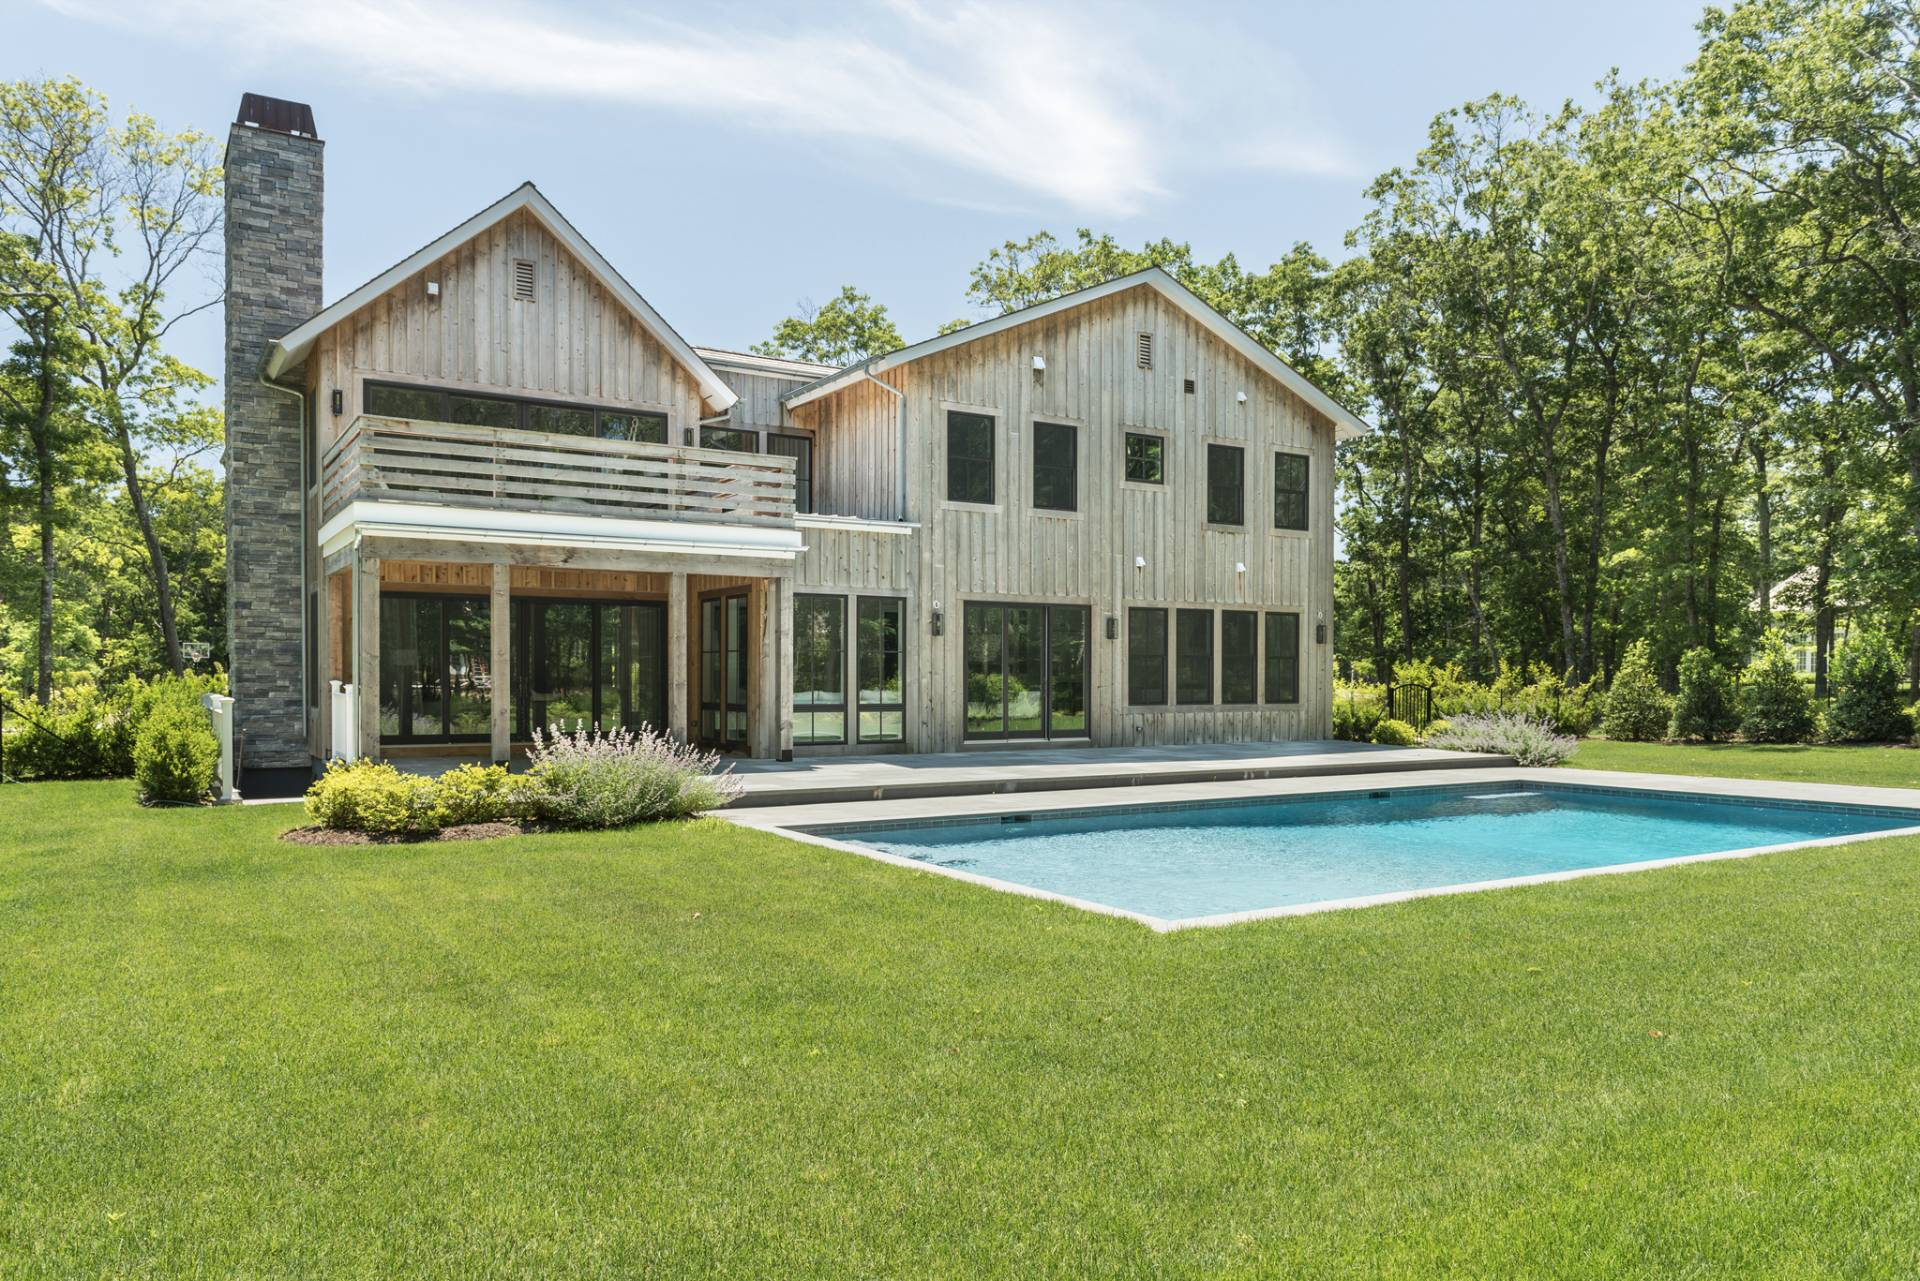 Single Family Home for Sale at The Mecox Barn: New Construction At Barn & Vine, Bridgehampton 64 Birchwood Lane (Lot 29, Mecox Barn), Bridgehampton, New York